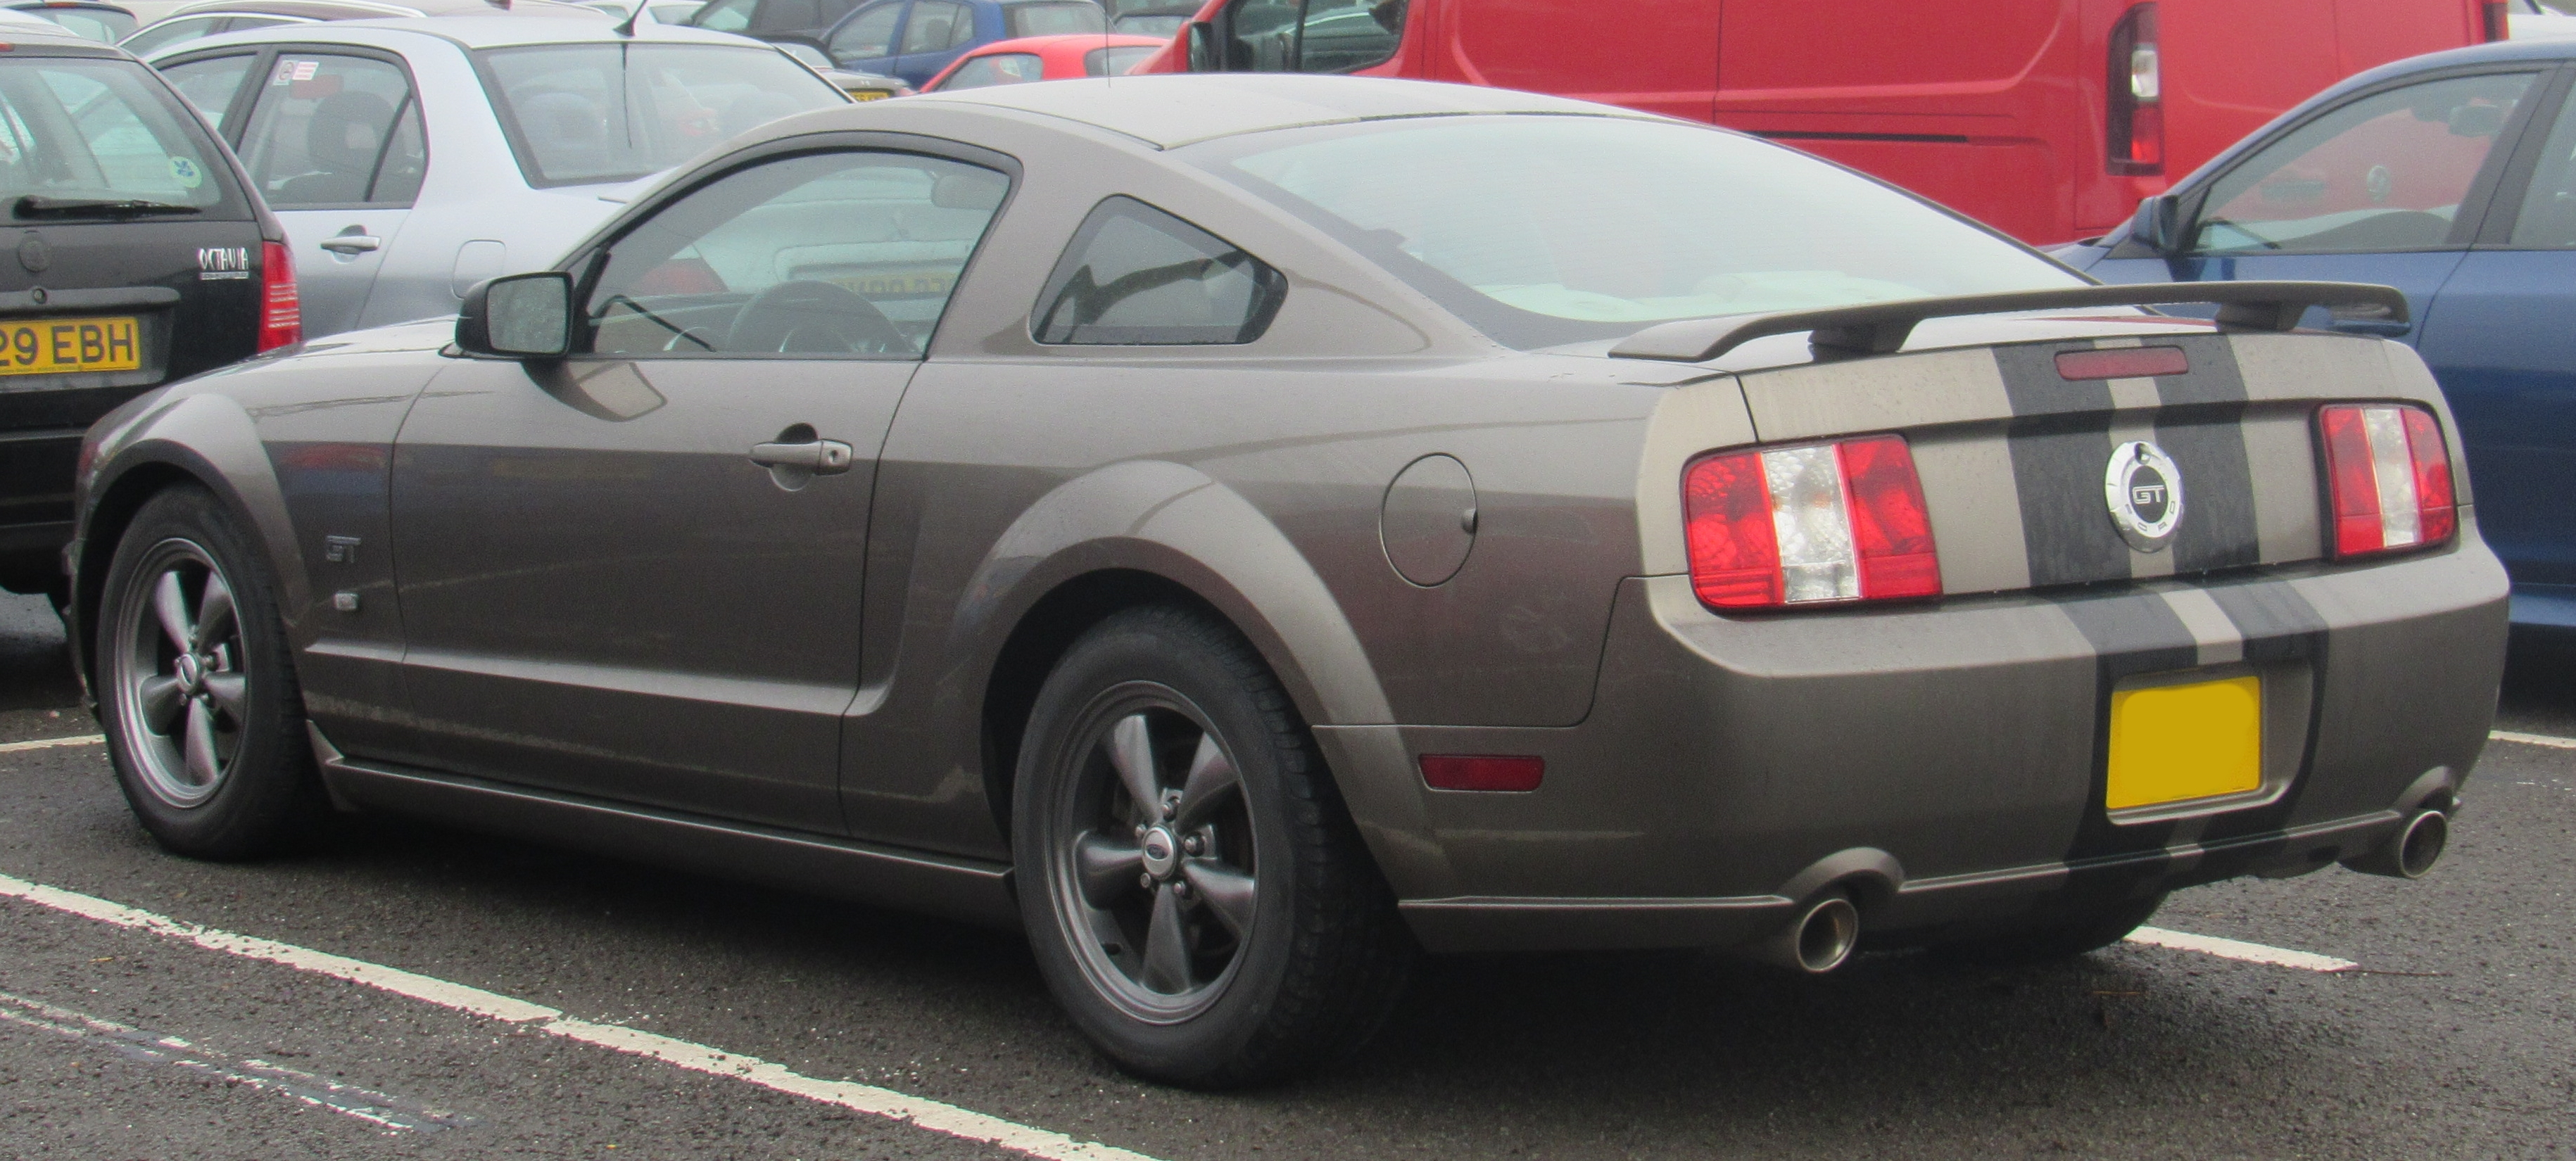 https commons wikimedia org wiki file 2006 ford mustang gt 4 6 jpg